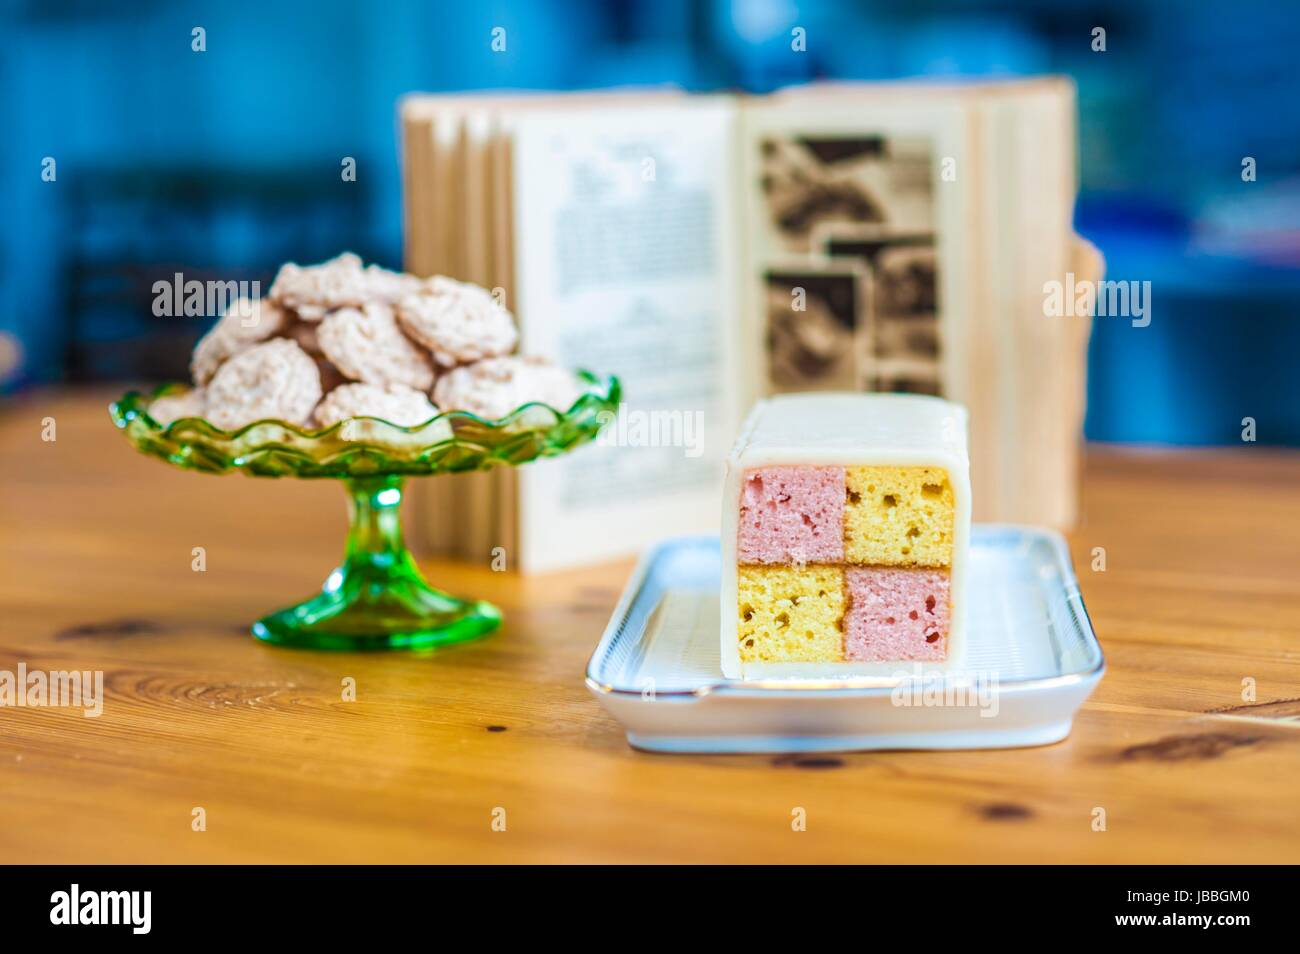 Yummy sponge cake and cookies for you. Enjoy them. Baking book in the background. - Stock Image